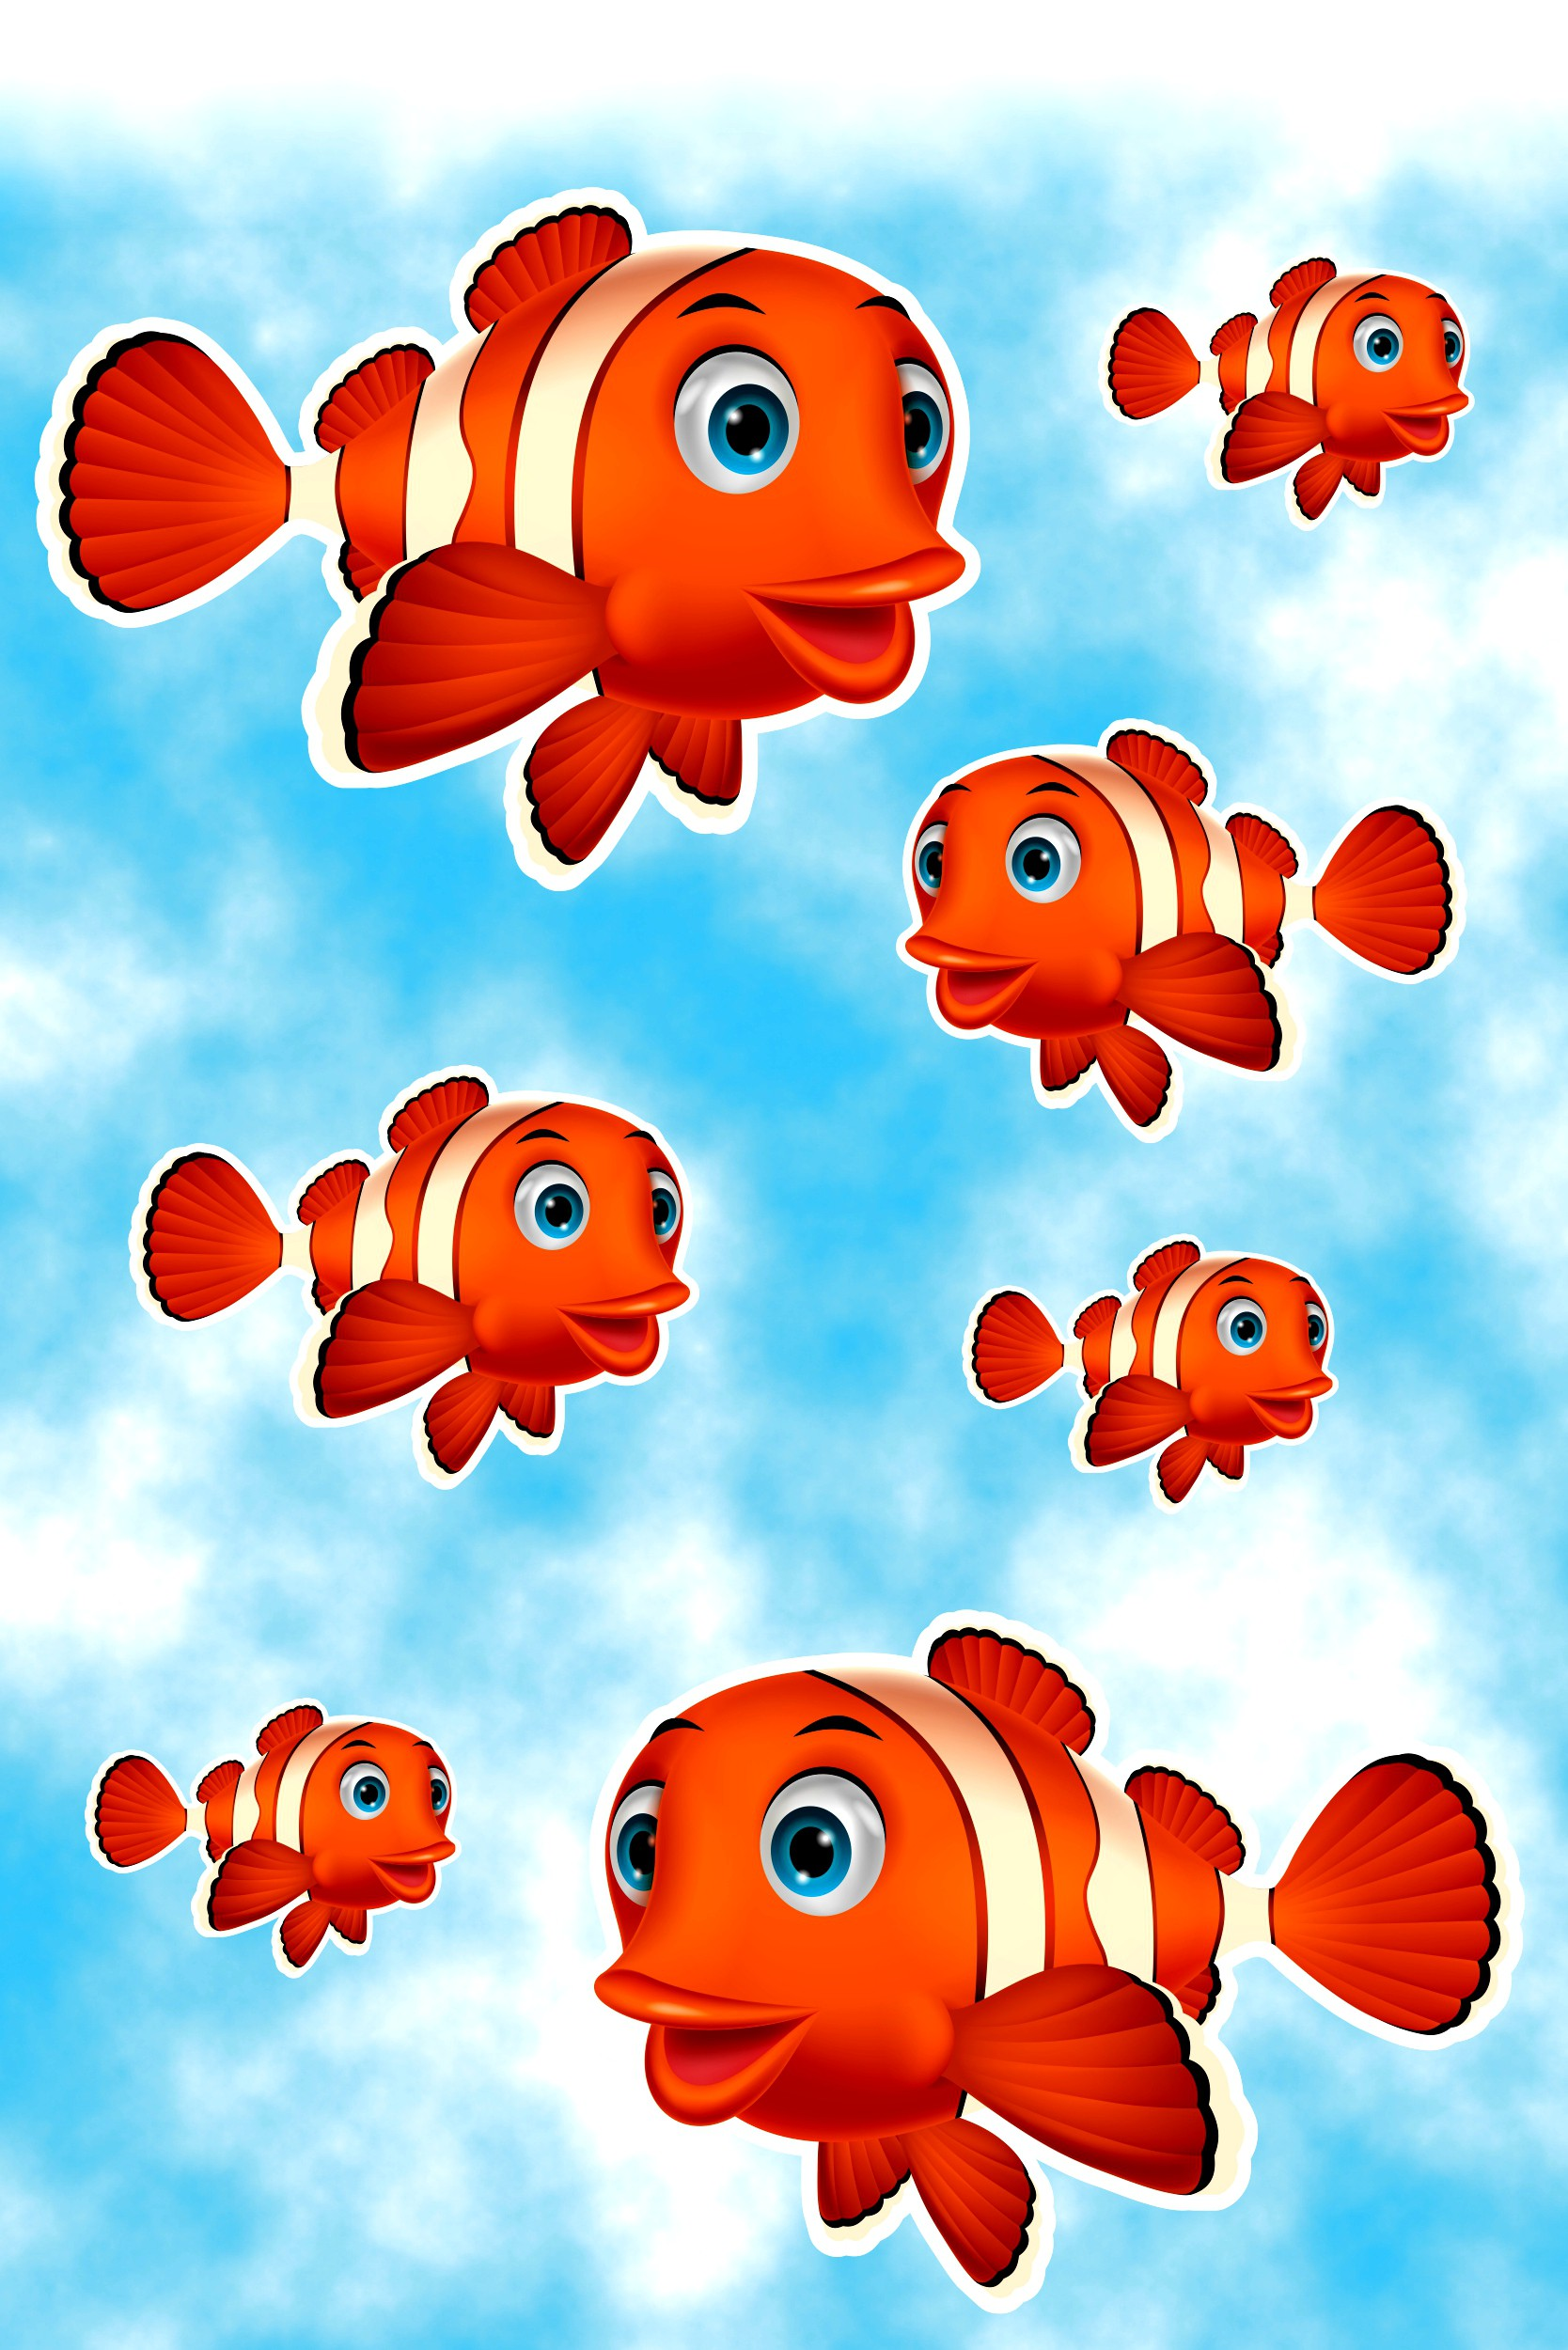 Autocollant clown-poissons 300 x 200 mm 001